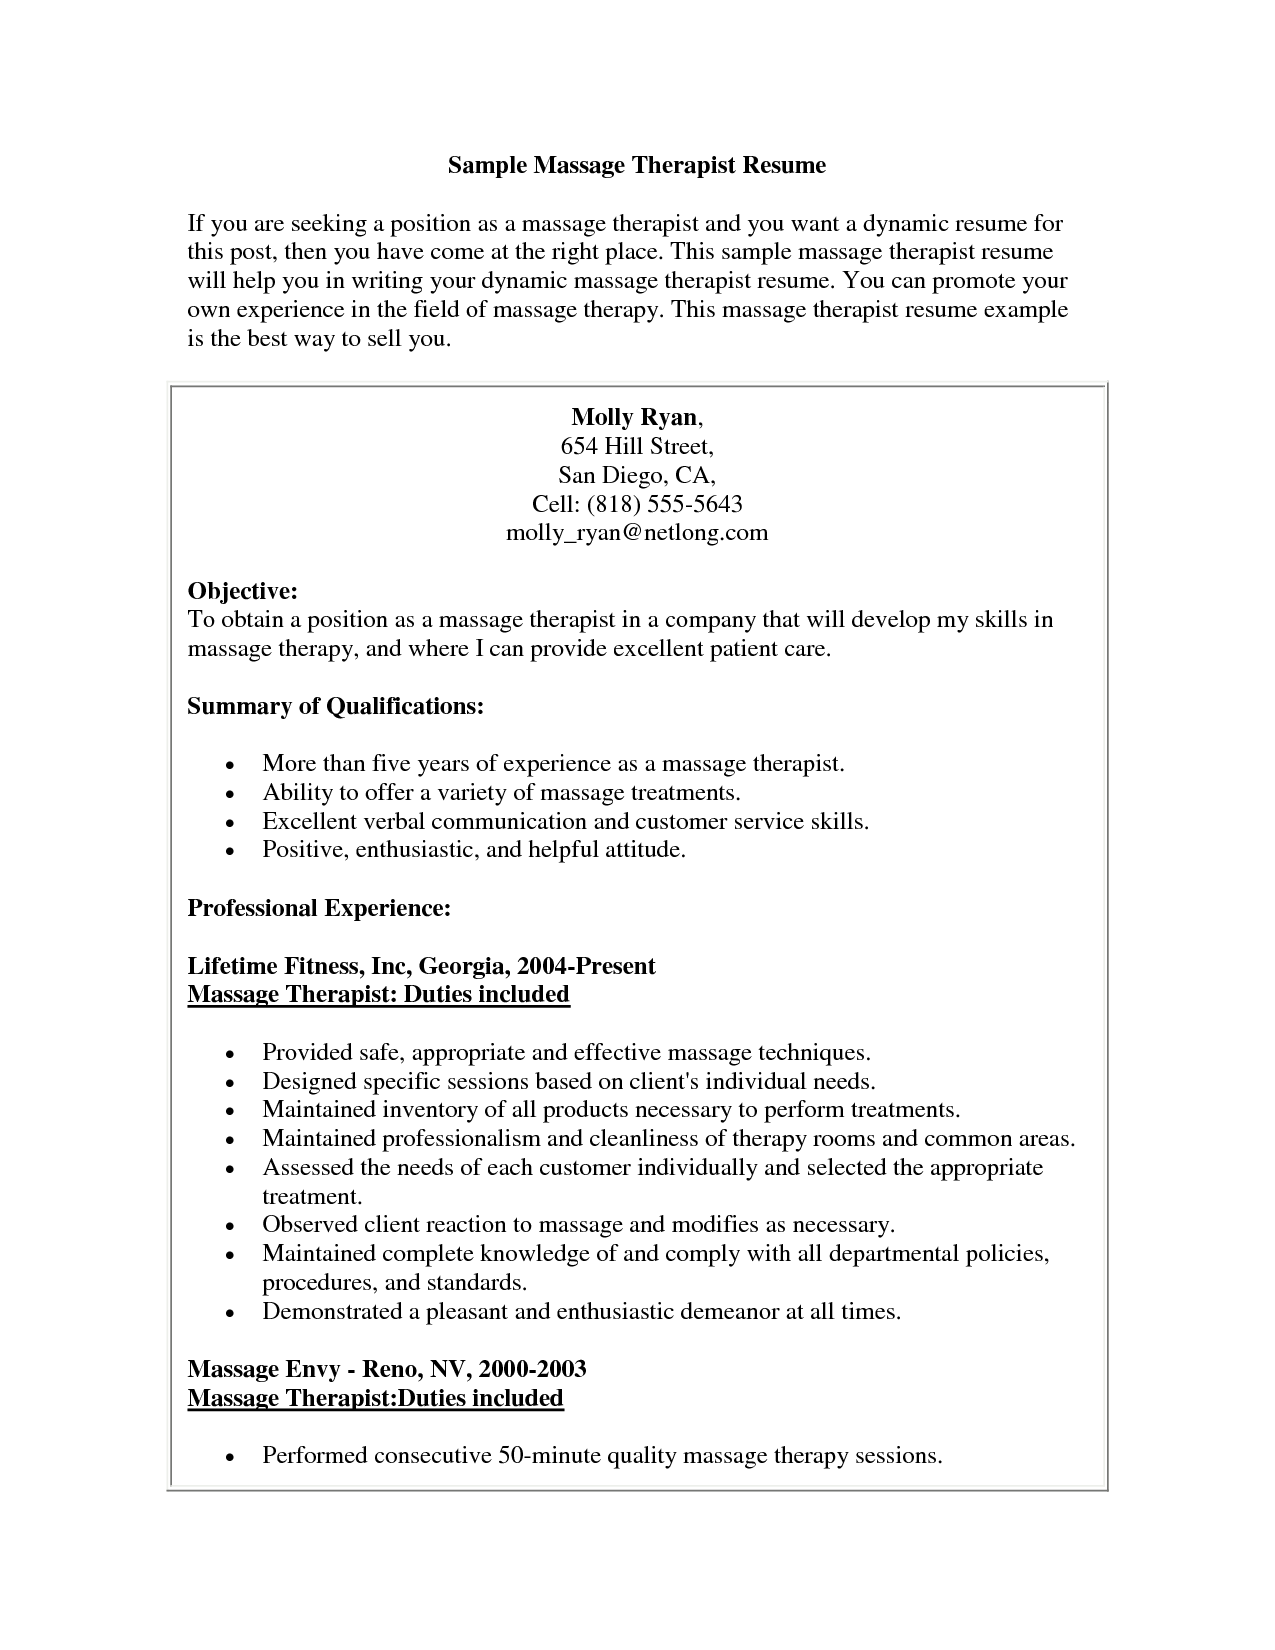 Massage Therapist Resume Sample Massage Therapist Resume Sample, Massage  Therapist Resume Objective, Massage Therapist